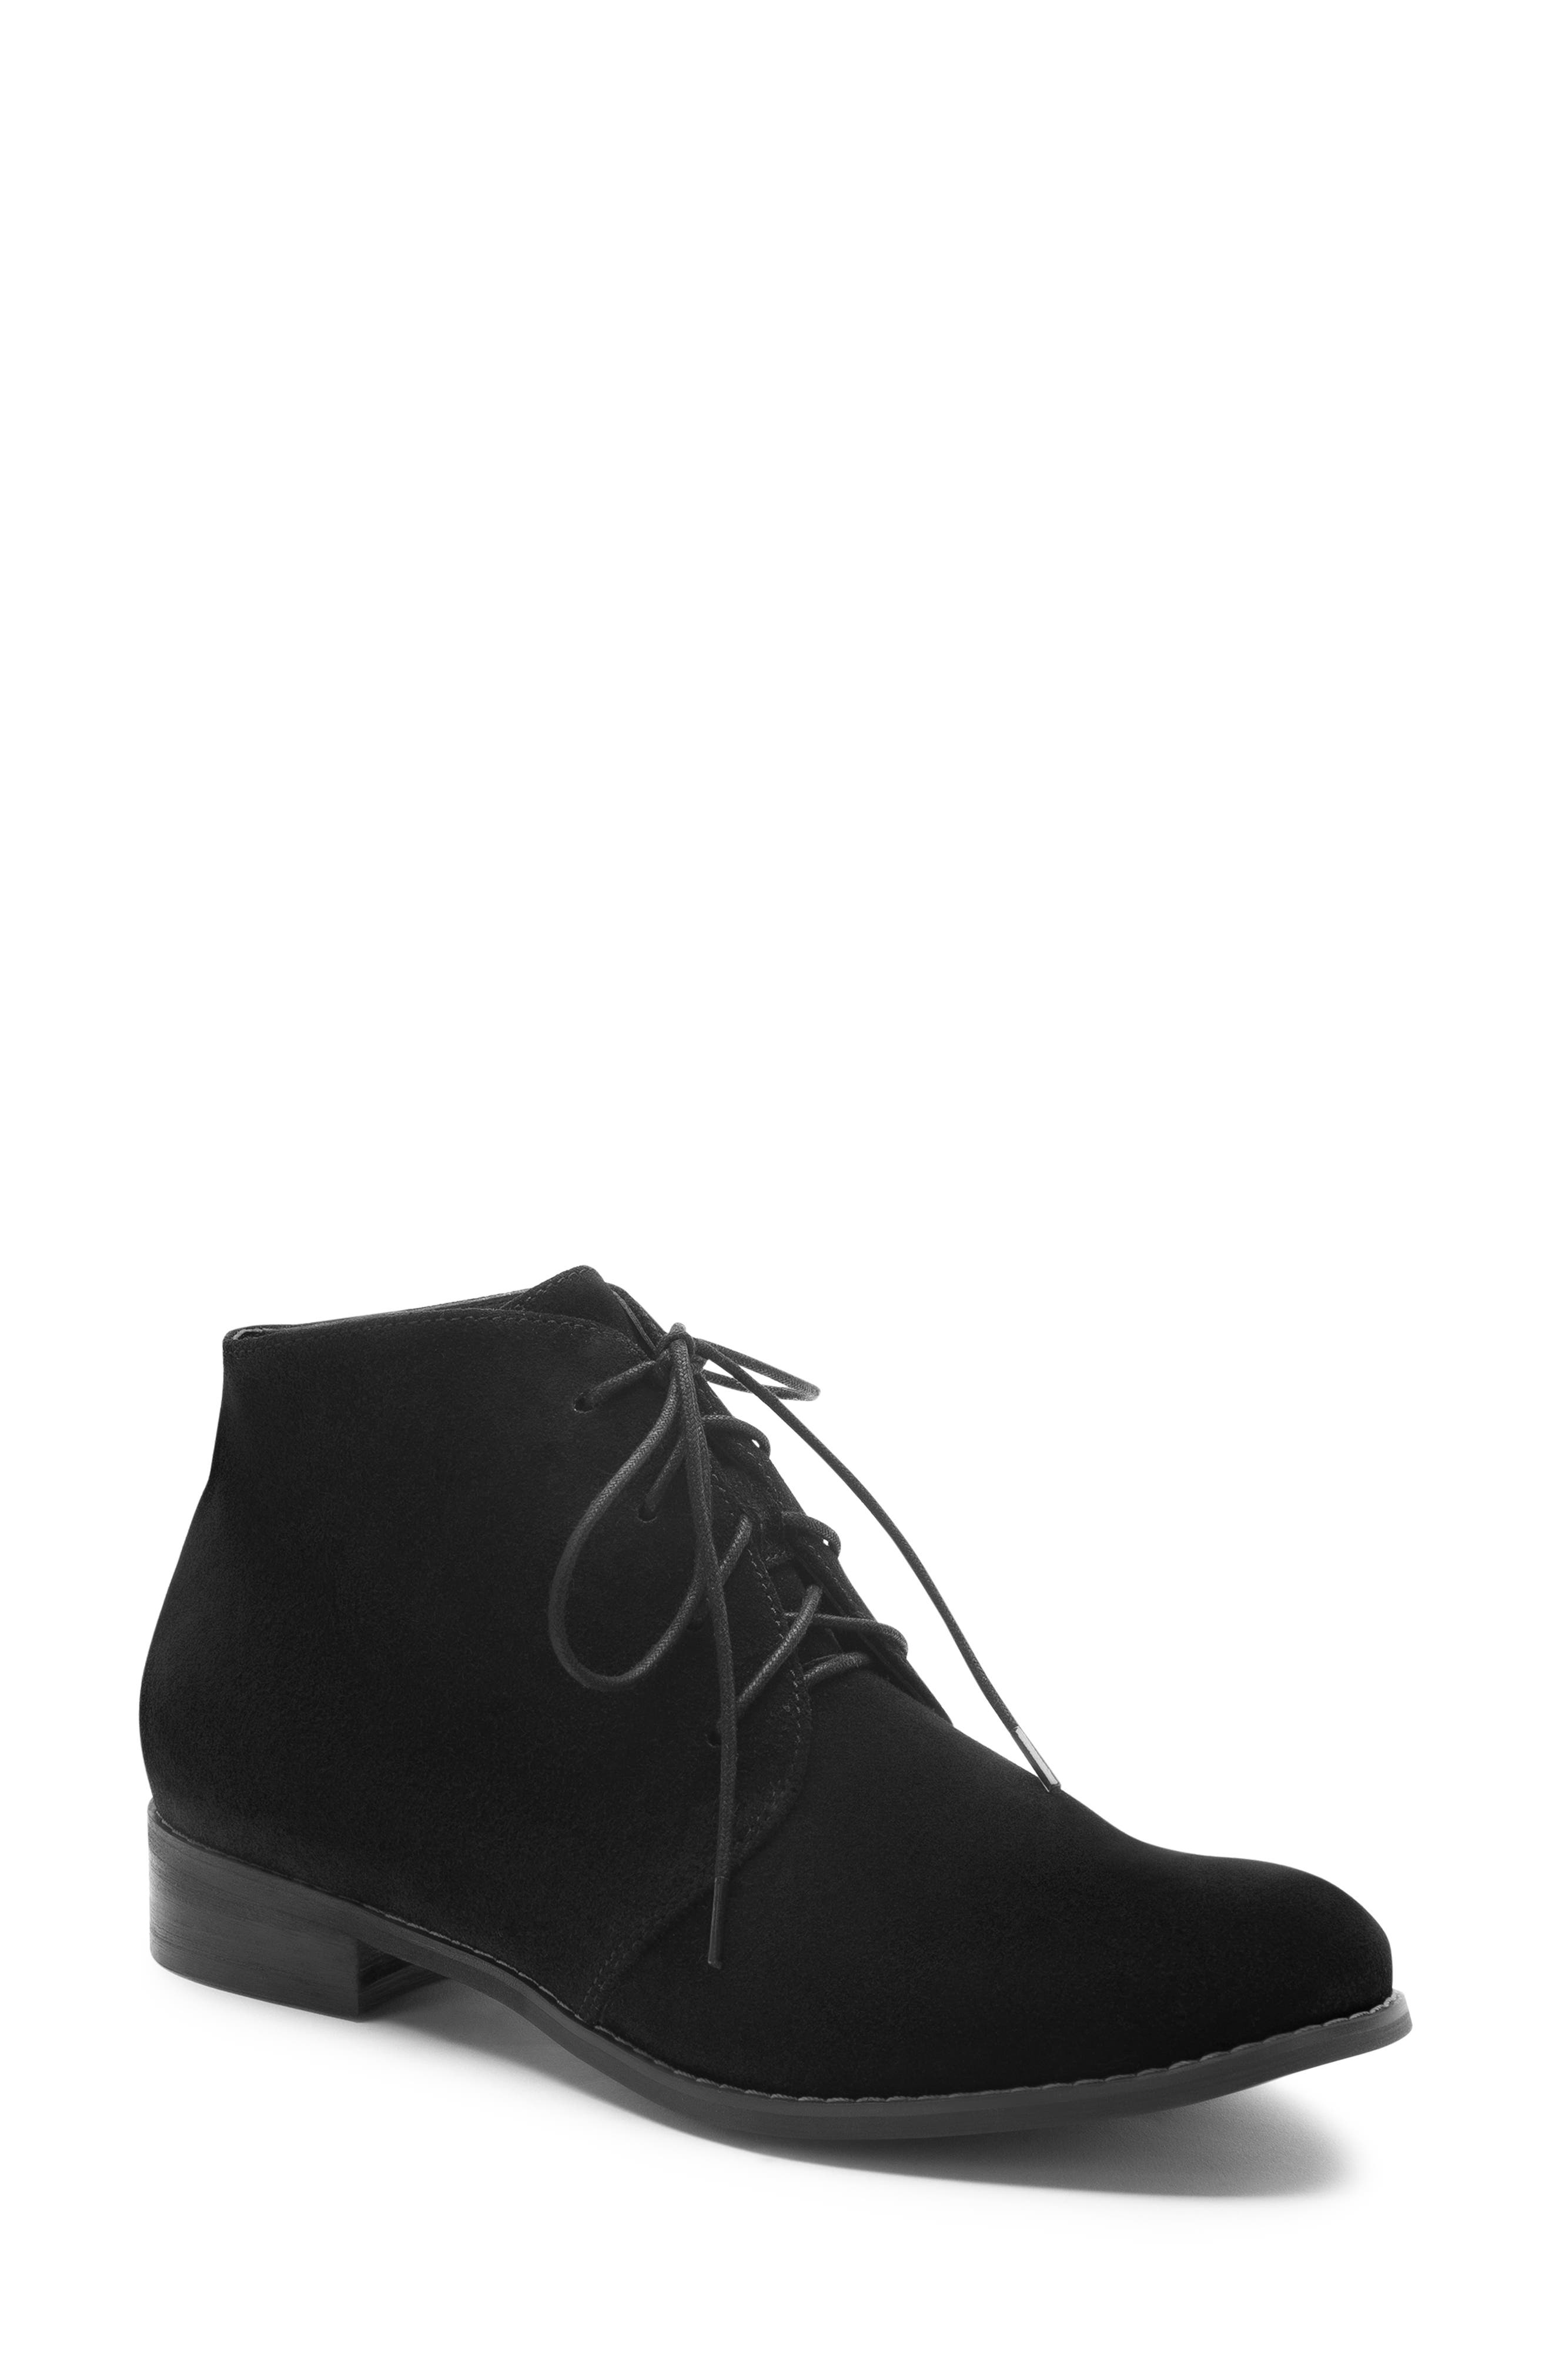 Blondo Rayann Waterproof Desert Boot- Black